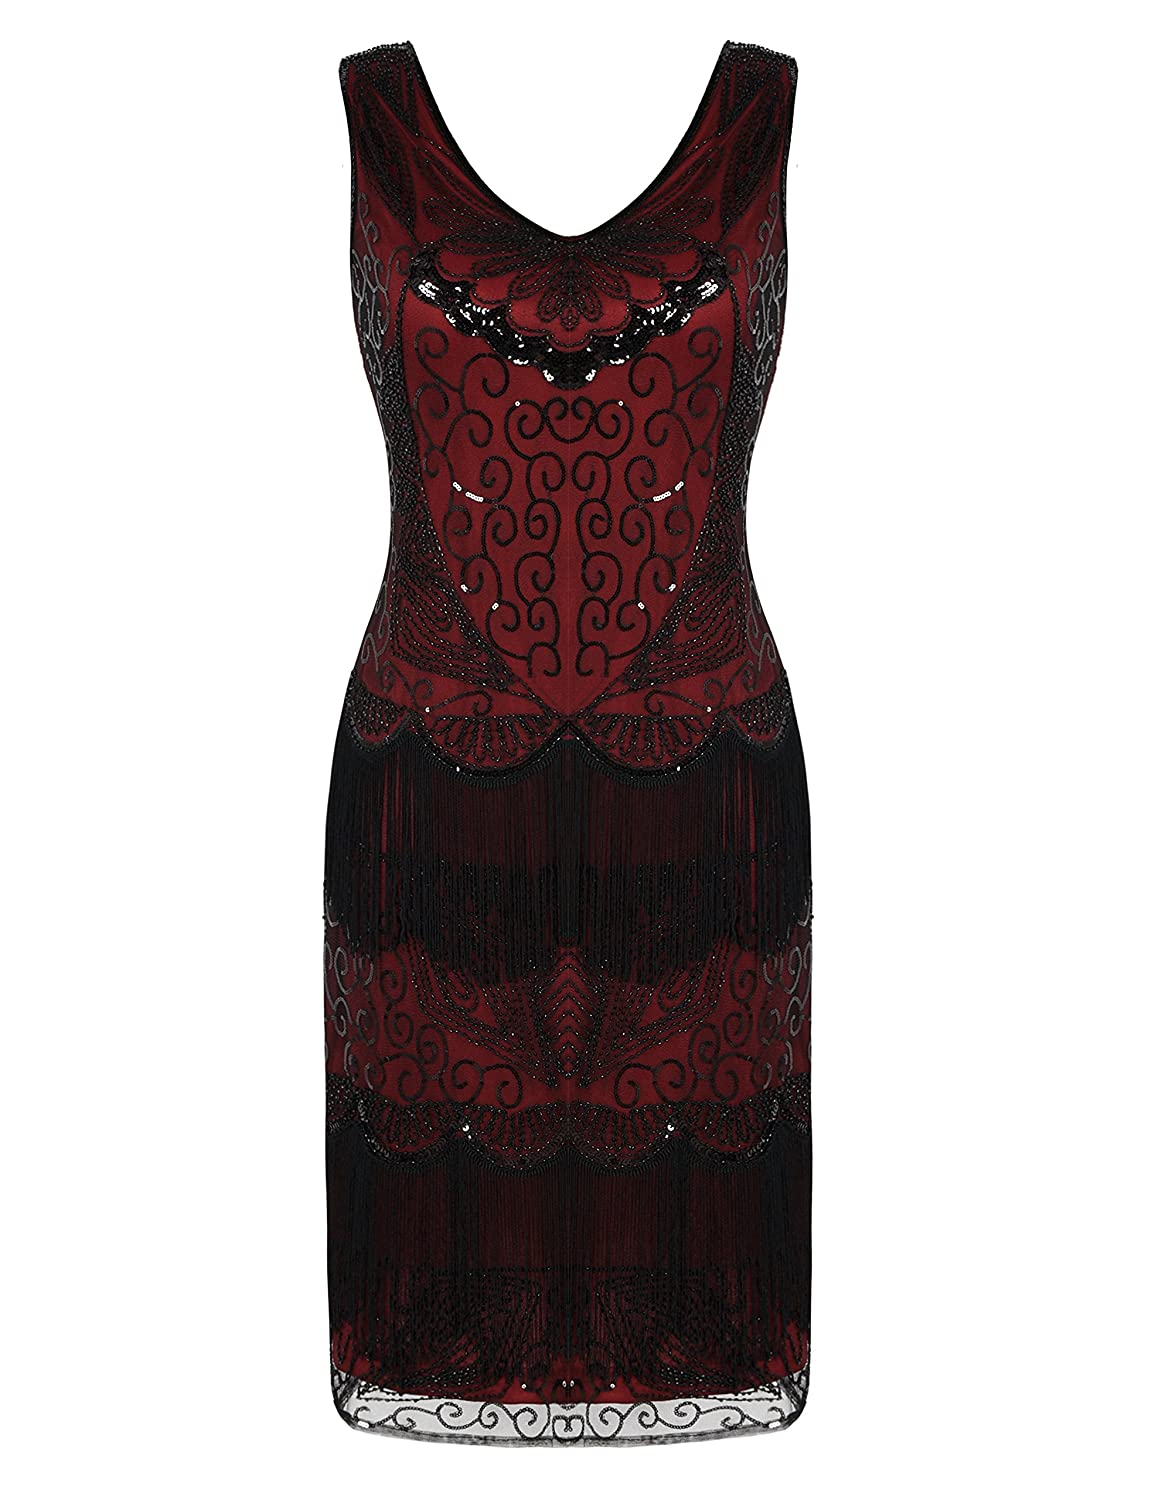 c15d9f29 Beads and sequin embellished,stunning flapper dress. V neck,zipper closure  in the side(size M/US8-10,L/US12,XL/US14,XXL/US16)